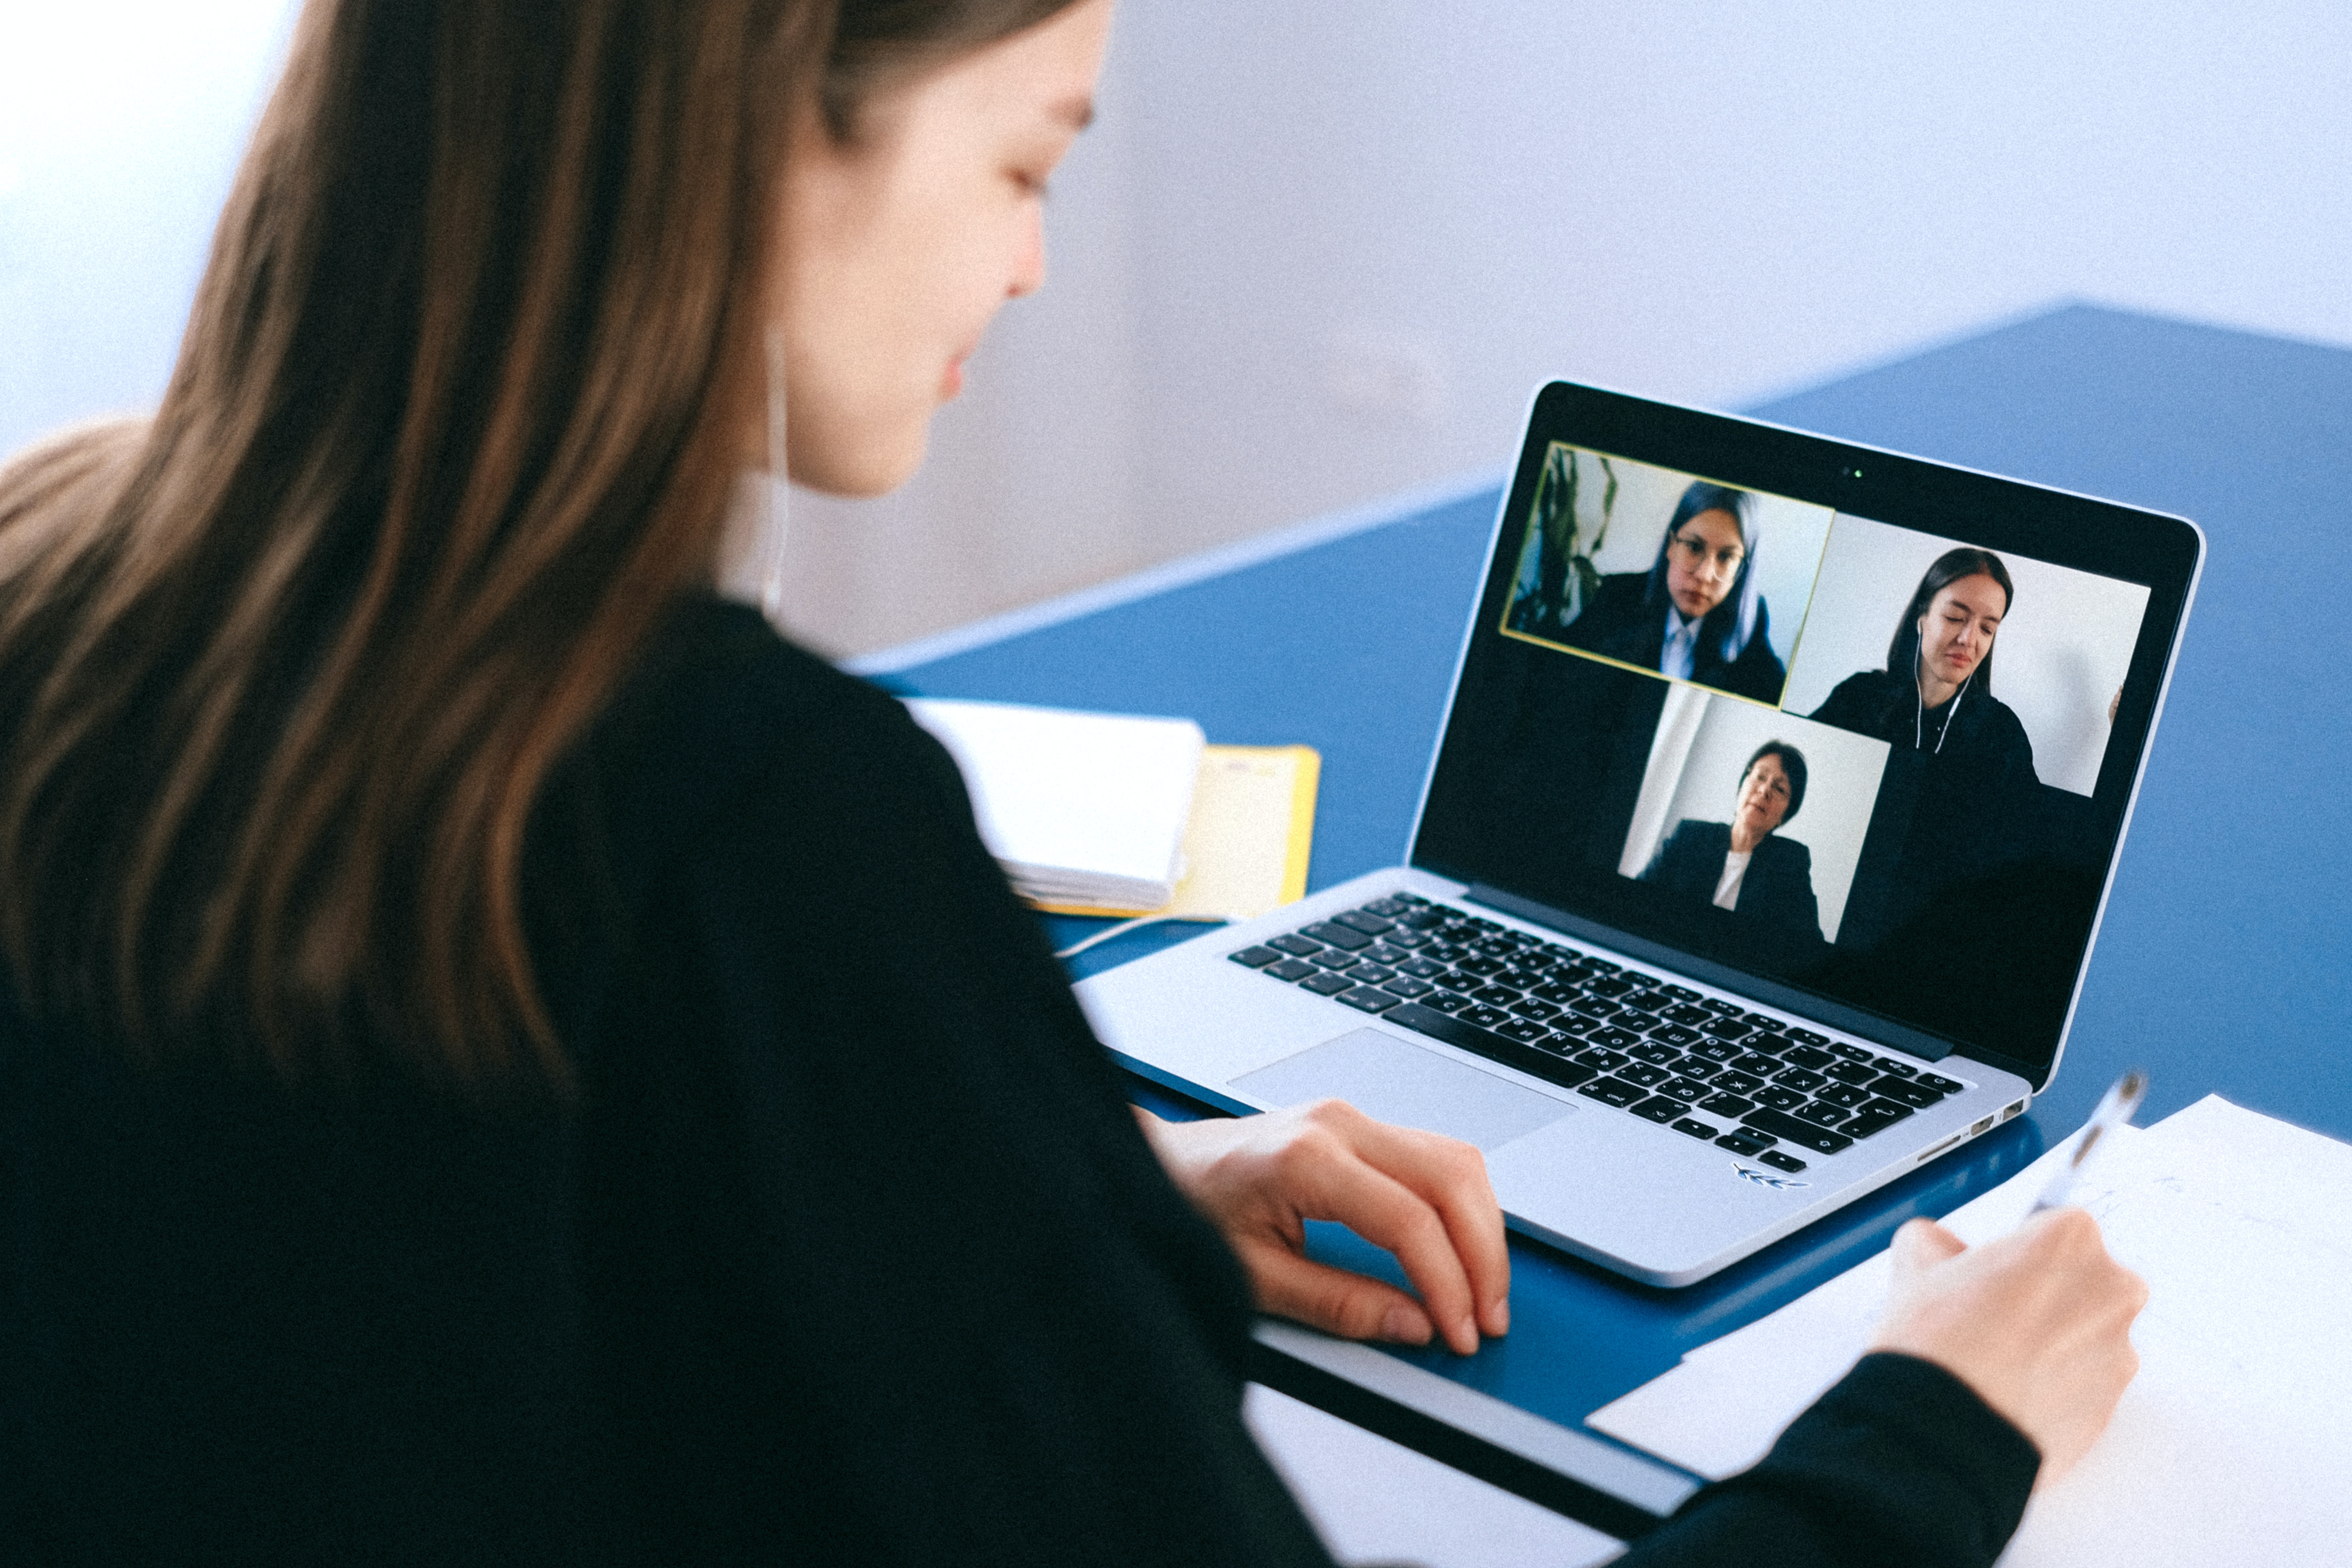 Woman chatting with three other women through a virtual meeting